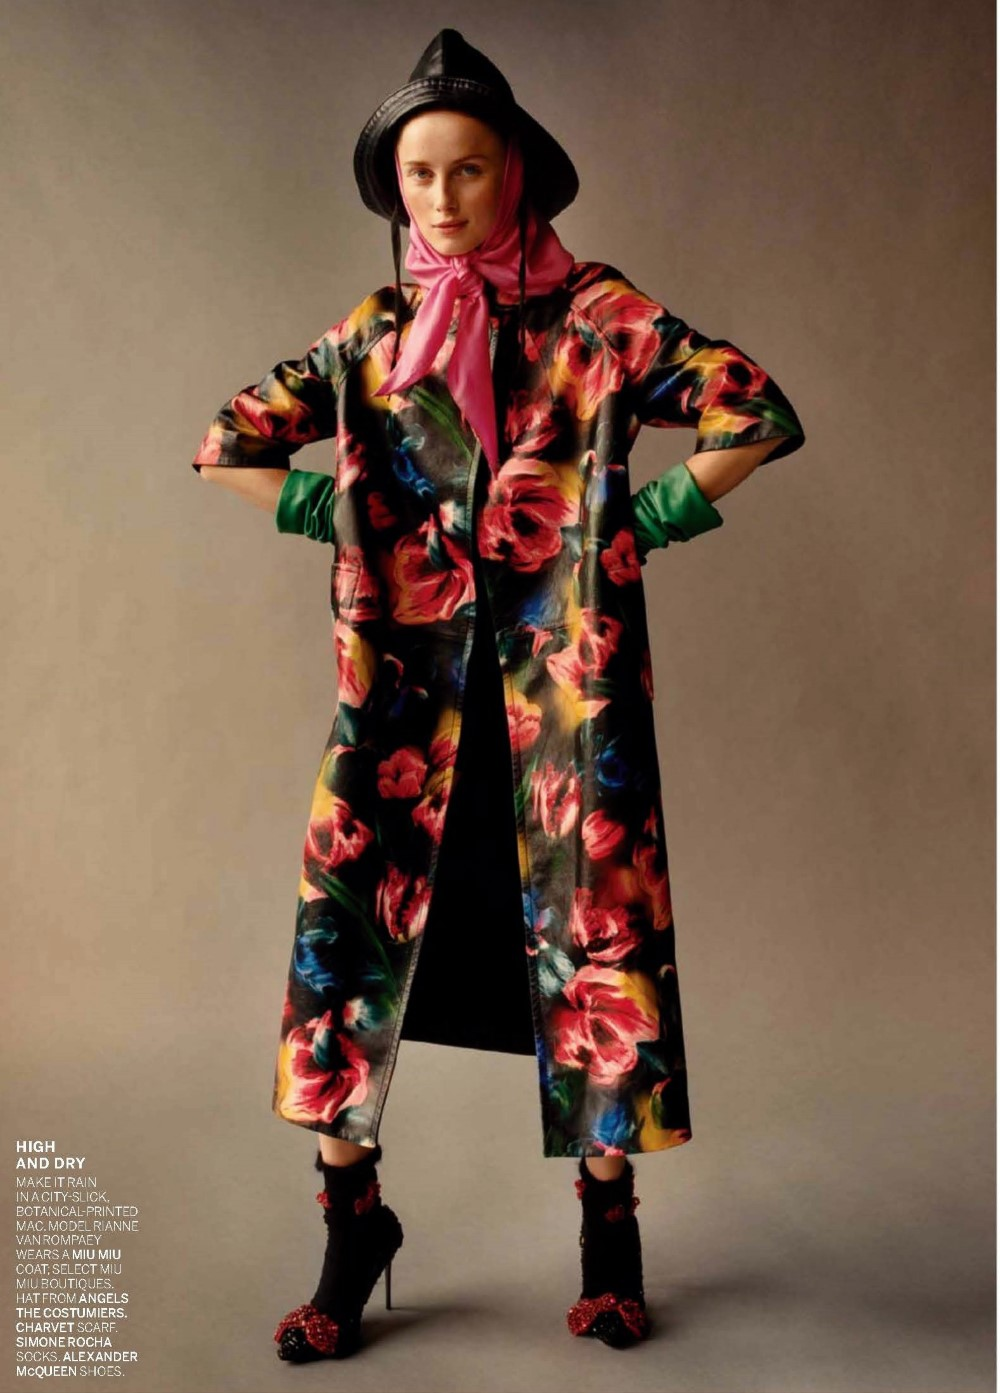 jamie-hawkesworth-vogue-us-oct-2017-fresh-coats- (8).jpg